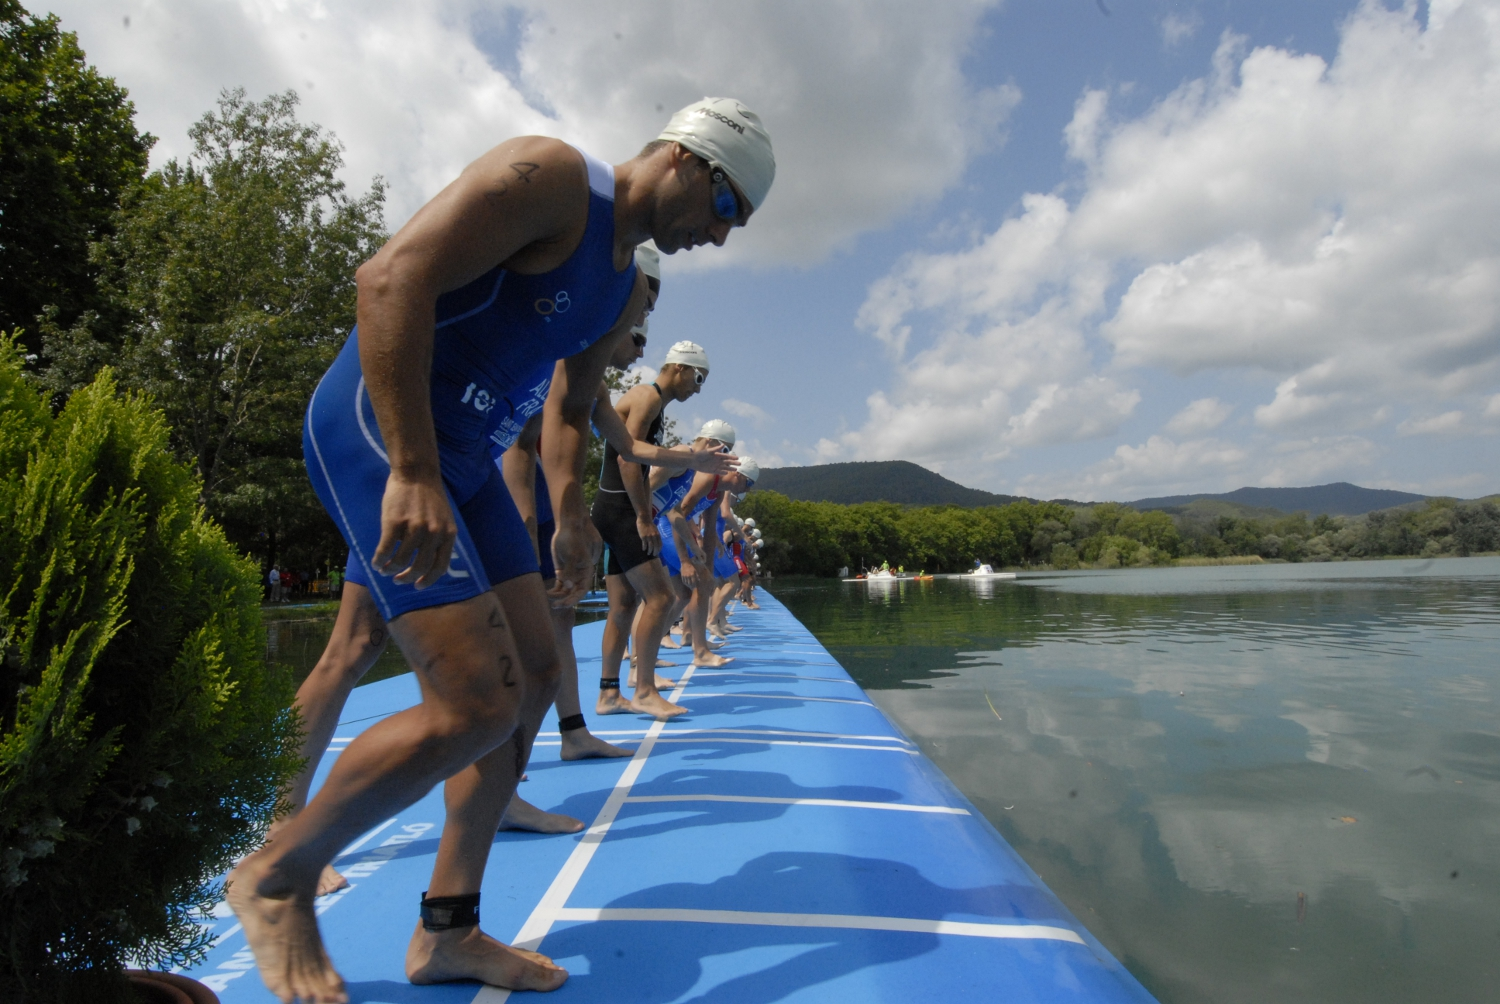 The International Triathlon Union (ITU) announces Banyoles as the fourth stop for next season World Cup